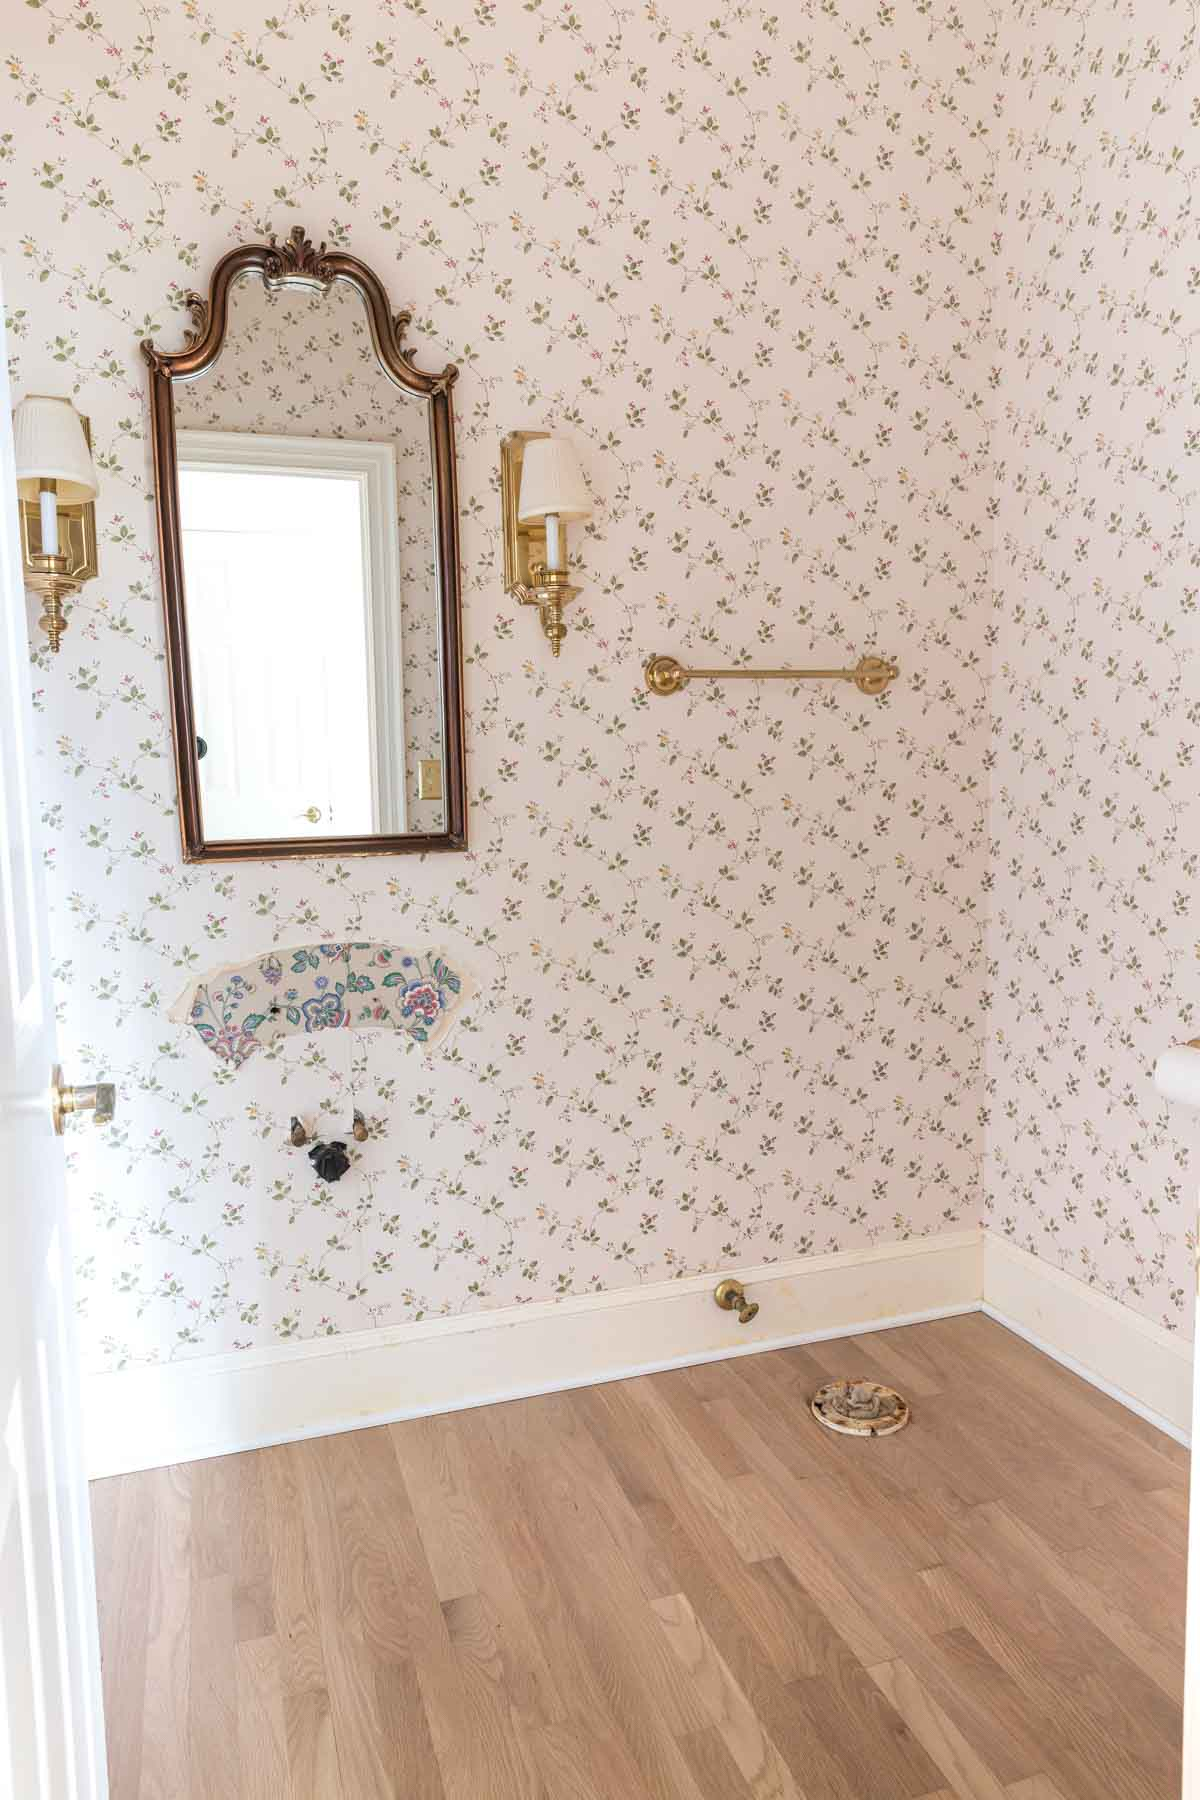 Our hall bathroom before remodeling it